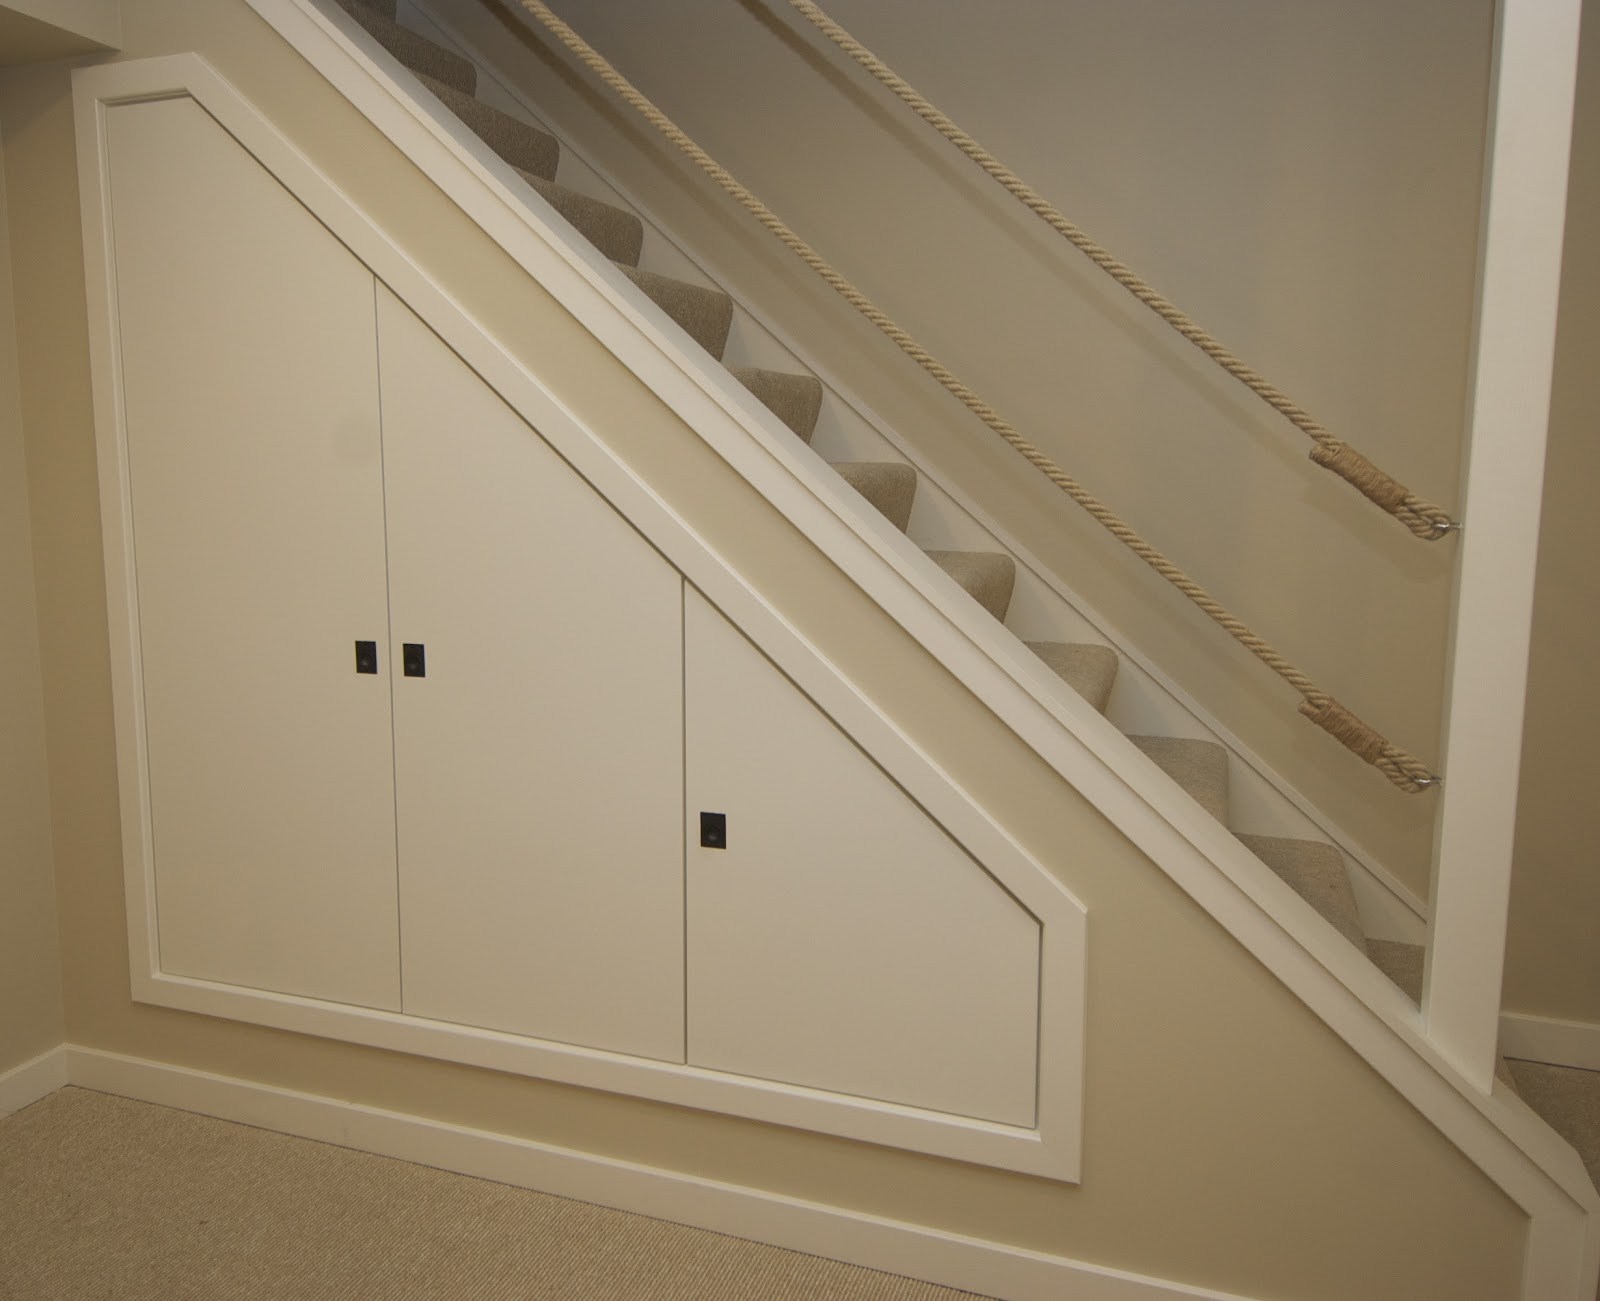 Astounding Design Of The Storage Under The Stairs With Beige Wall Ideas Added With White Wooden Wall Door Ideas